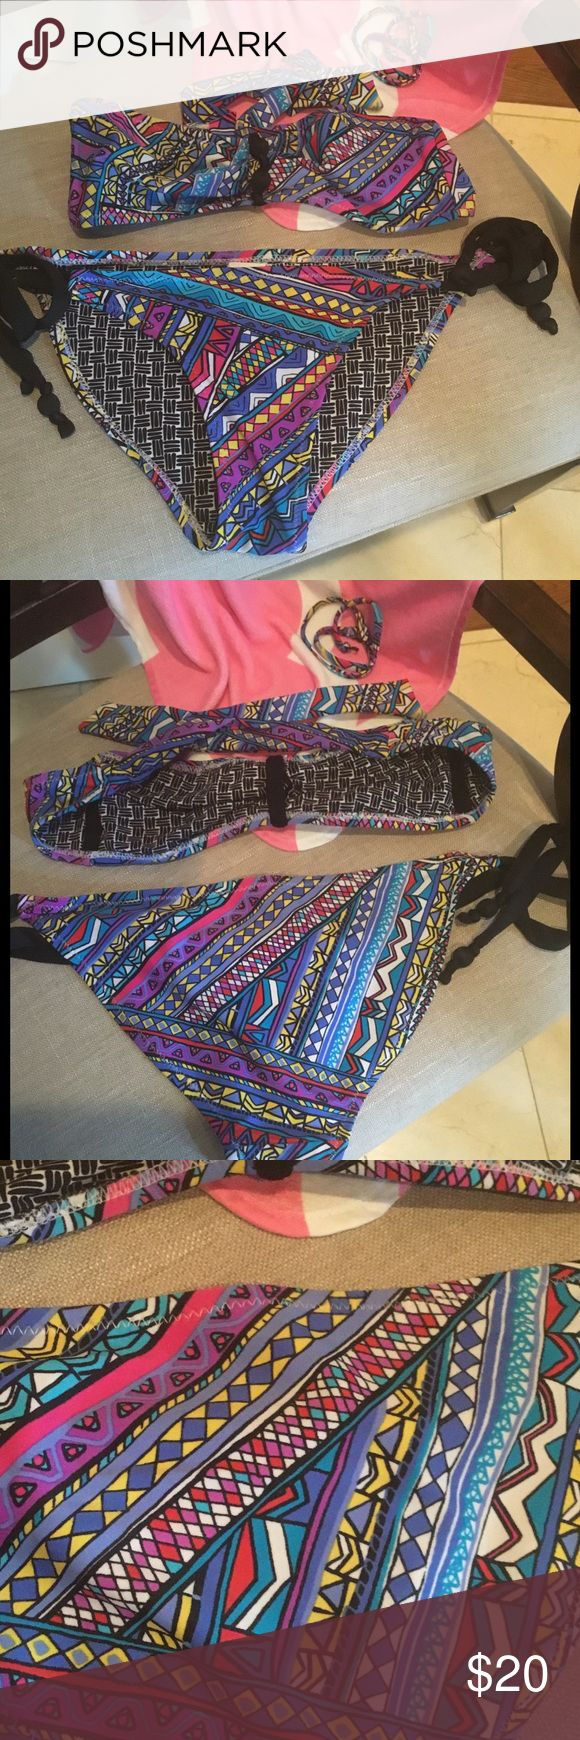 Cute Bandeau style Swimwear!  Adorable multi colored bandeau top with side tie matching bottoms. Xhilaration. Both top and bottom are size Small. Optional next strap. Bright colors of blue, teal, red, yellow and purple. Black accents. Excellent used condition!! Xhilaration Swim